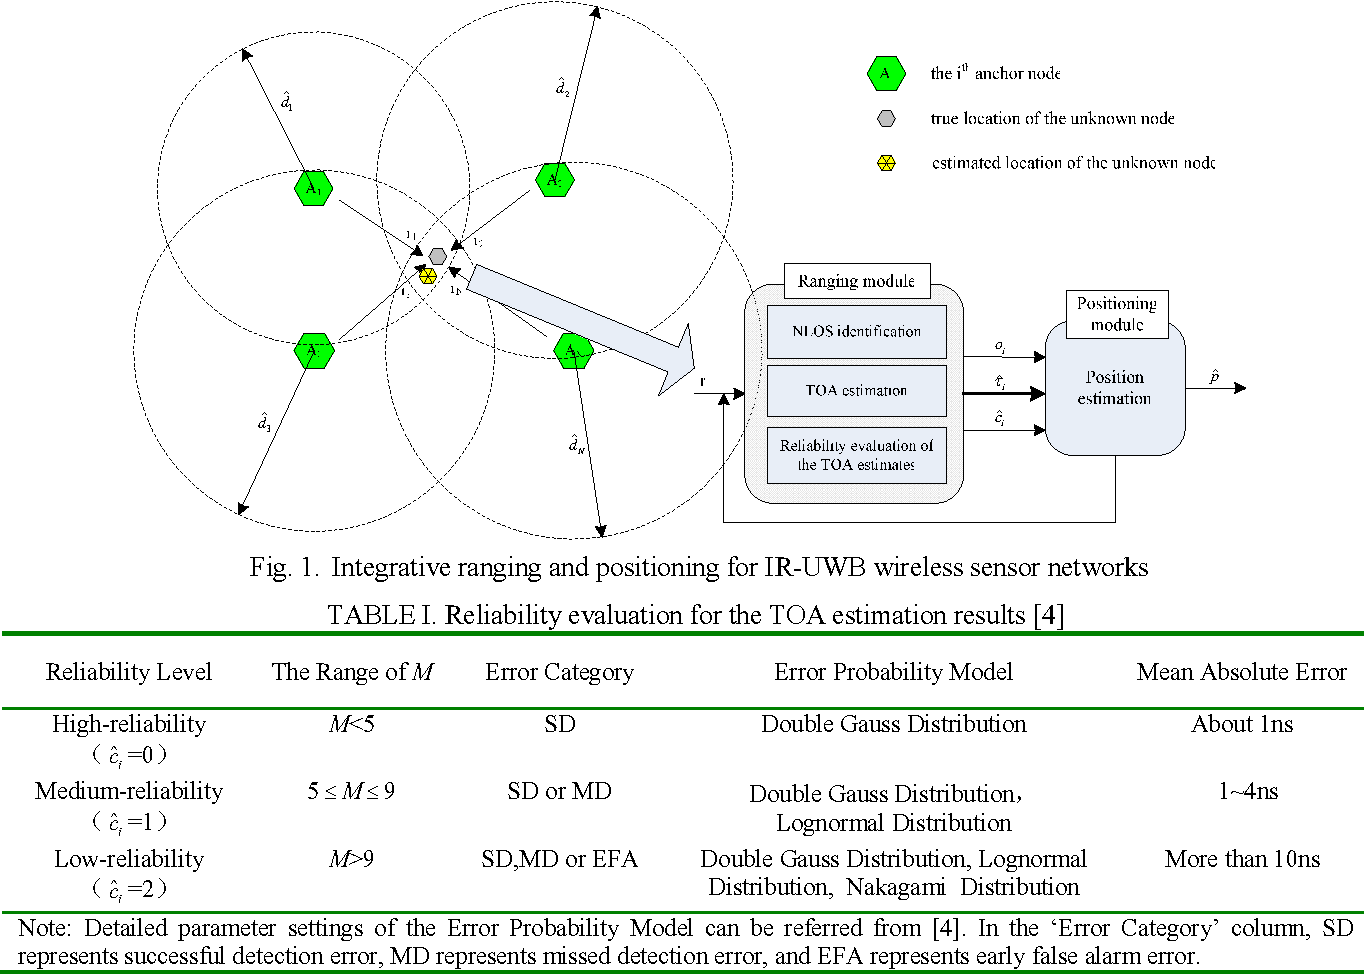 Fig. 1. Integrative ranging and positioning for IR-UWB wireless sensor networks